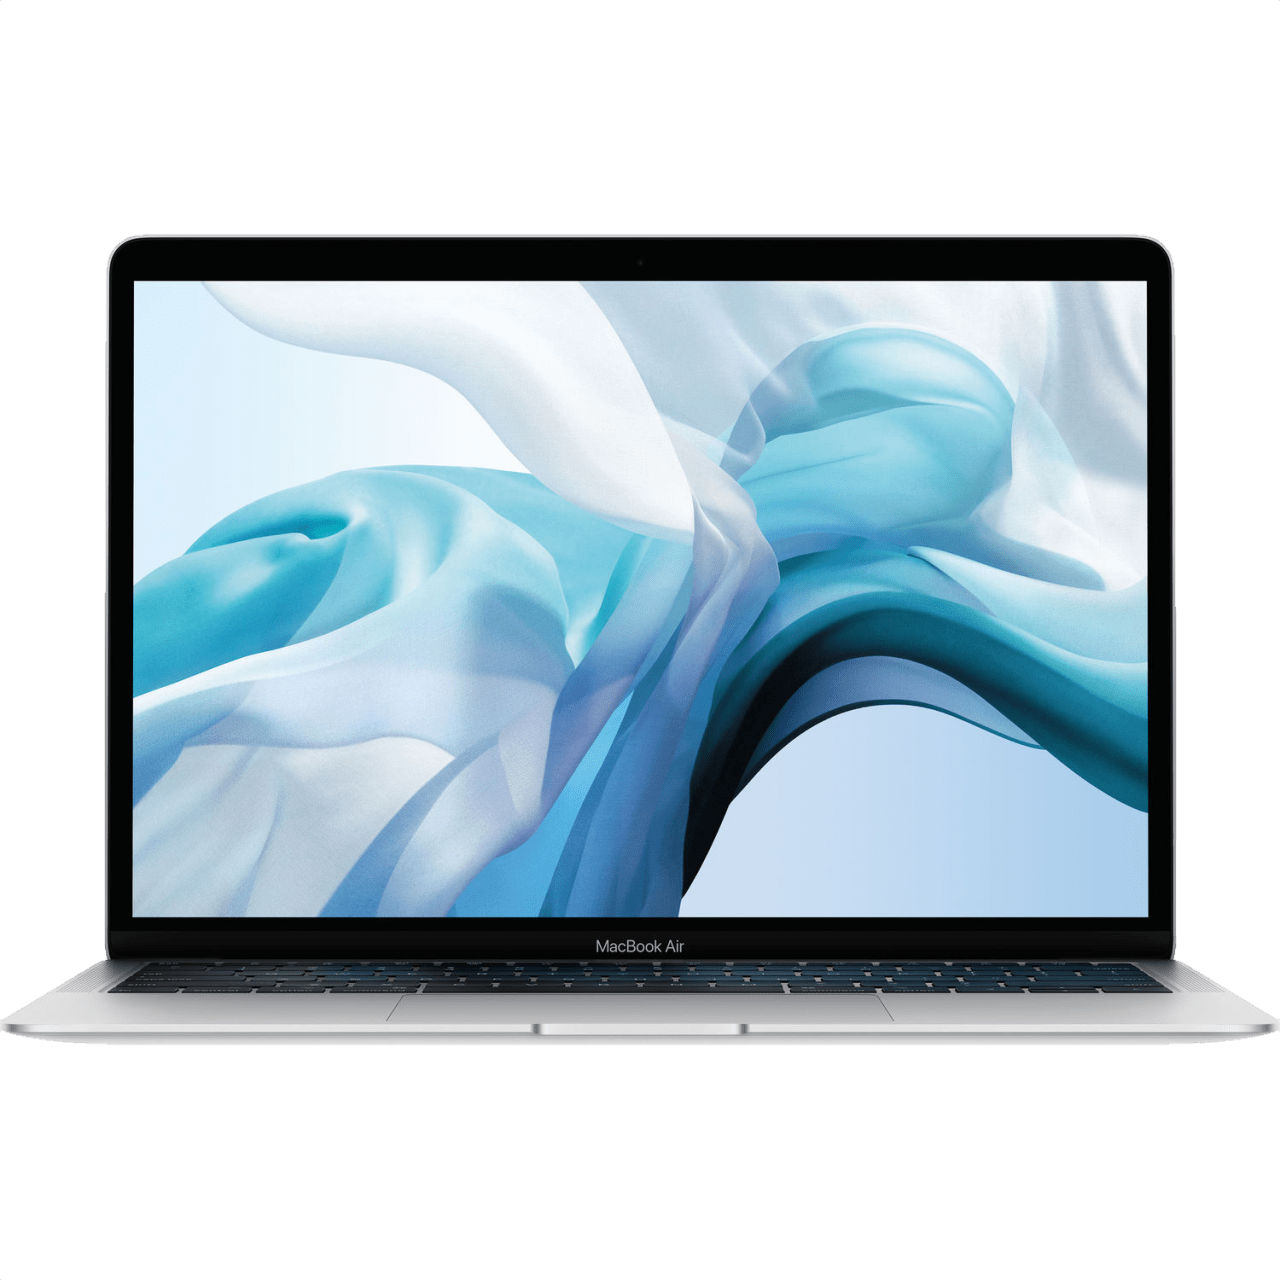 Silber Apple MacBook Air (Early 2020) Notebook - Intel® Core™ i3-1000NG4 - 8GB - 256GB SSD - Intel® Iris Plus Graphics.1